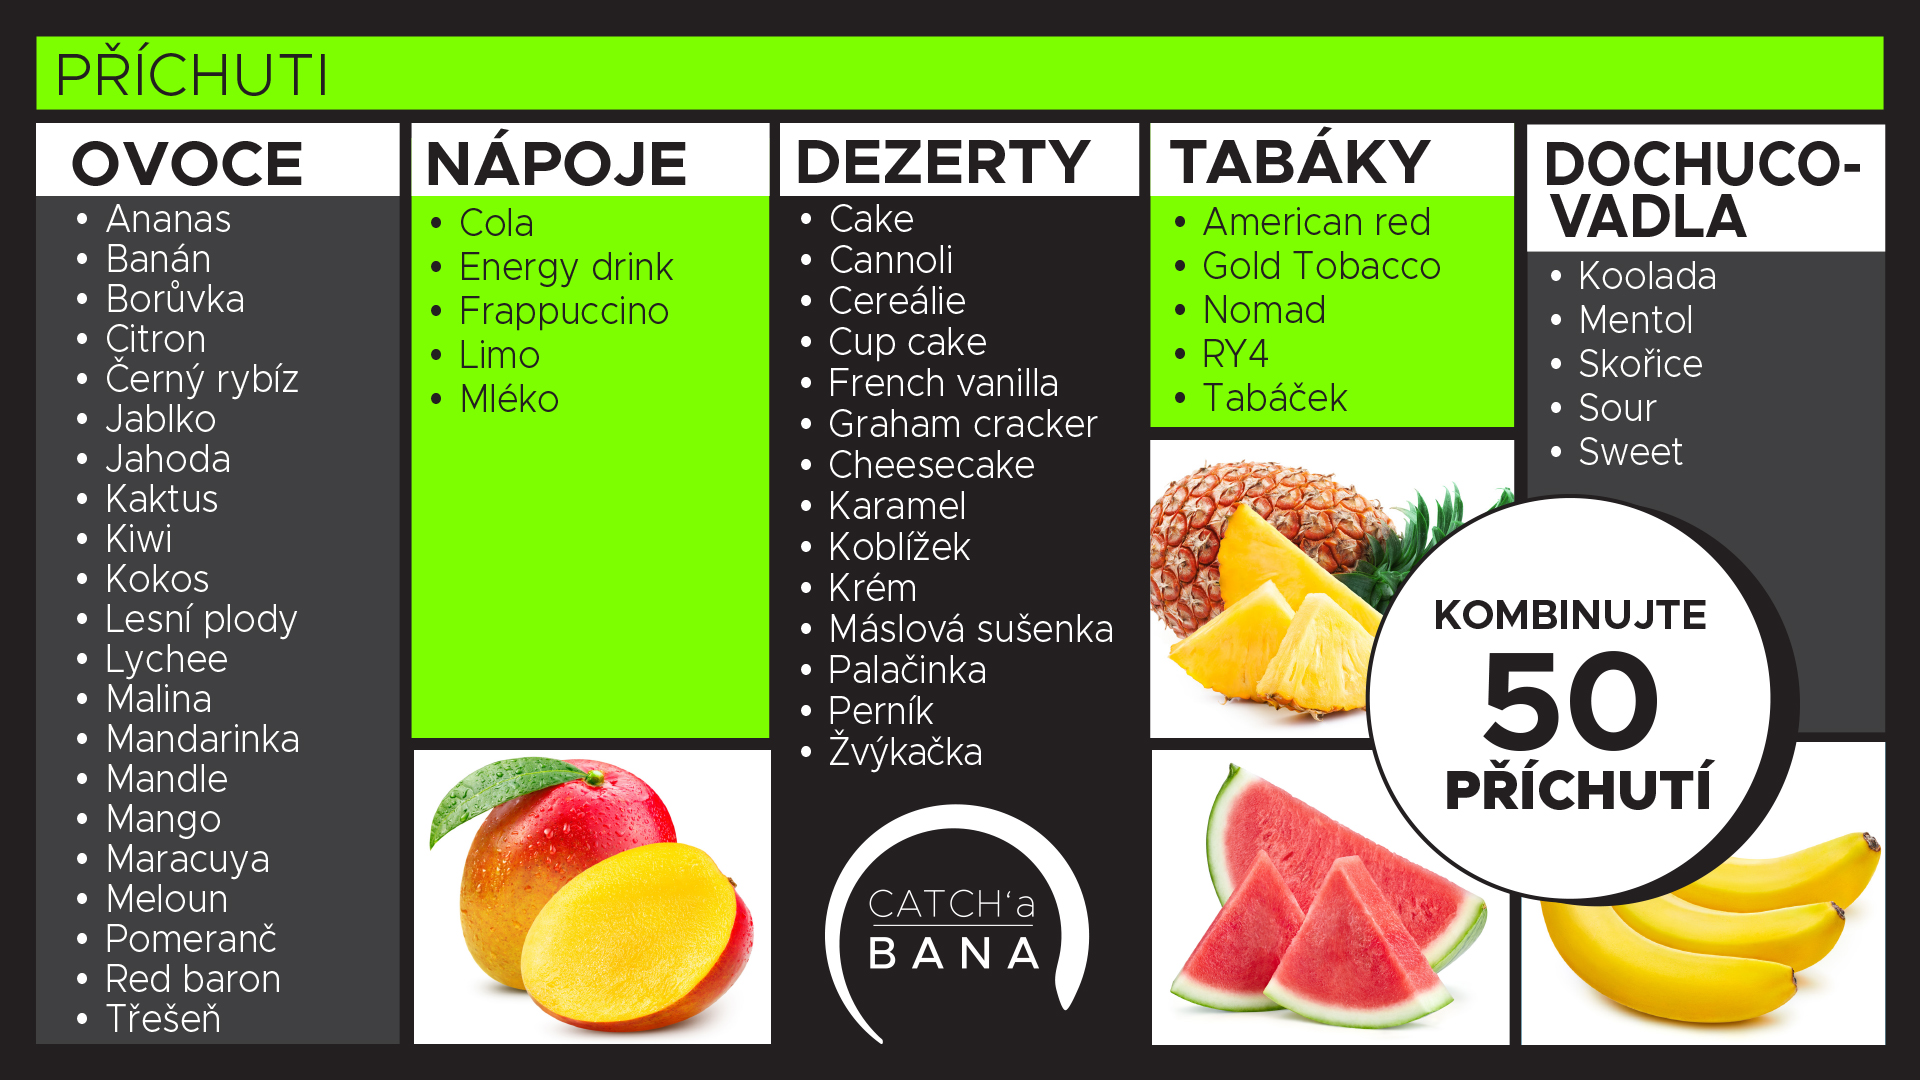 CATCHa_BANA_BAR_menu